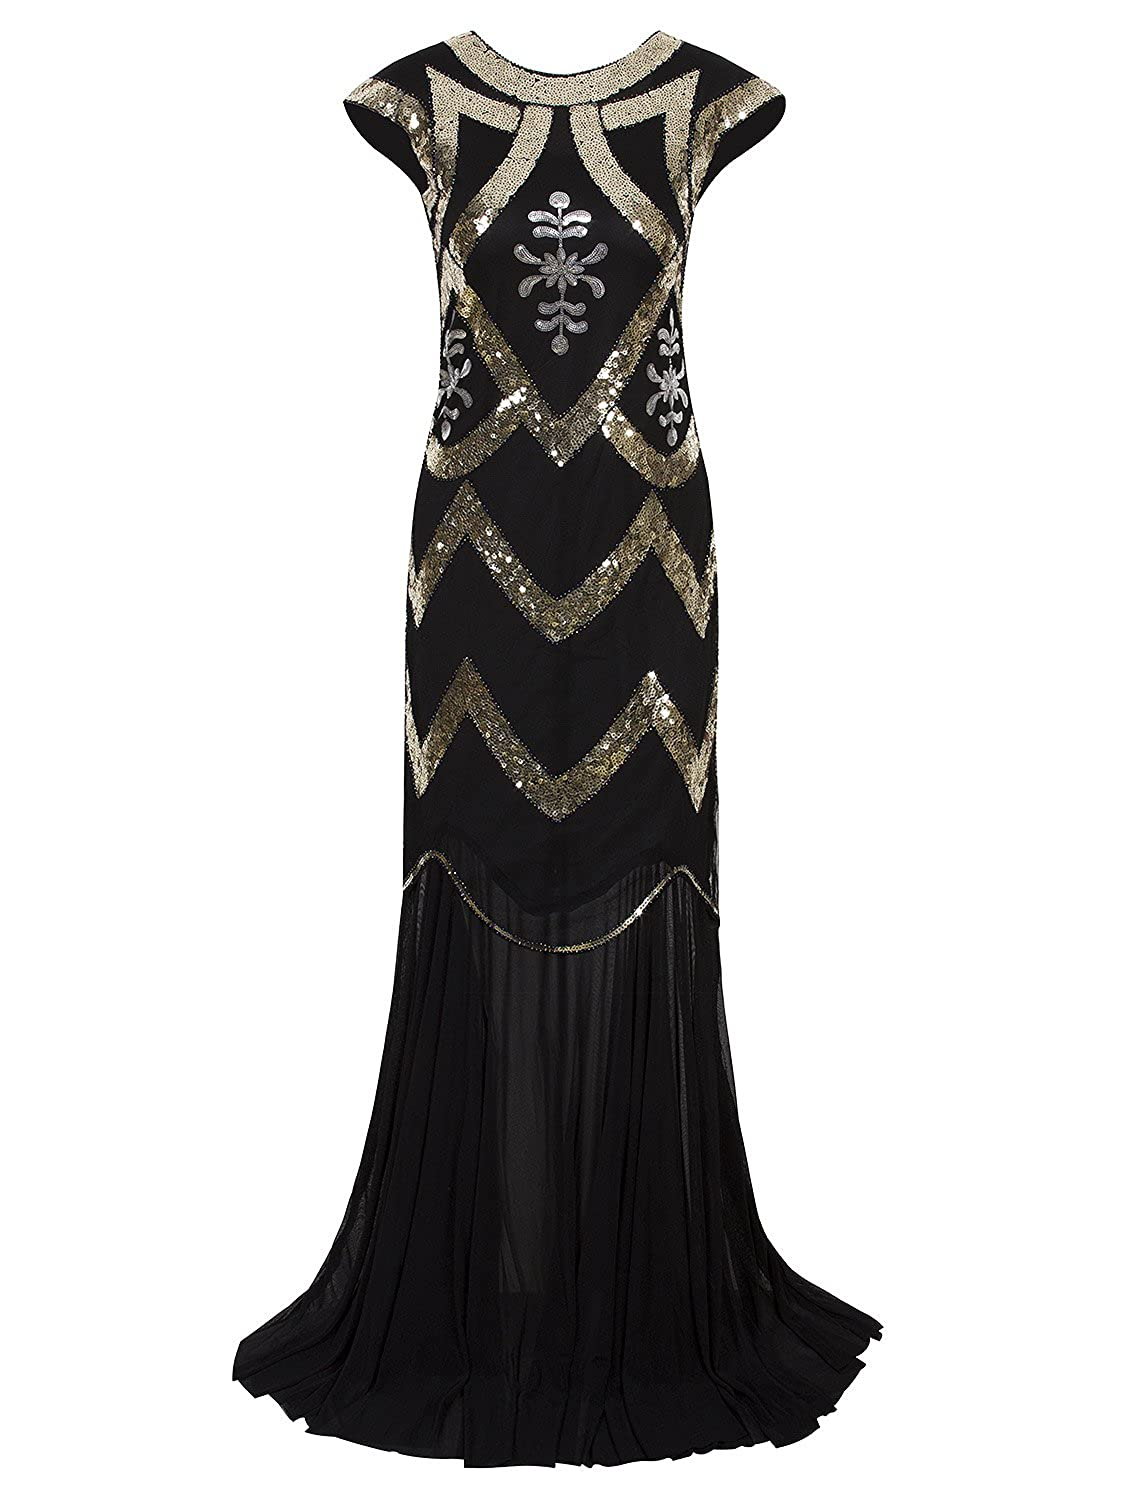 f721567990 Top 10 wholesale 1920s Long Flapper Dress - Chinabrands.com